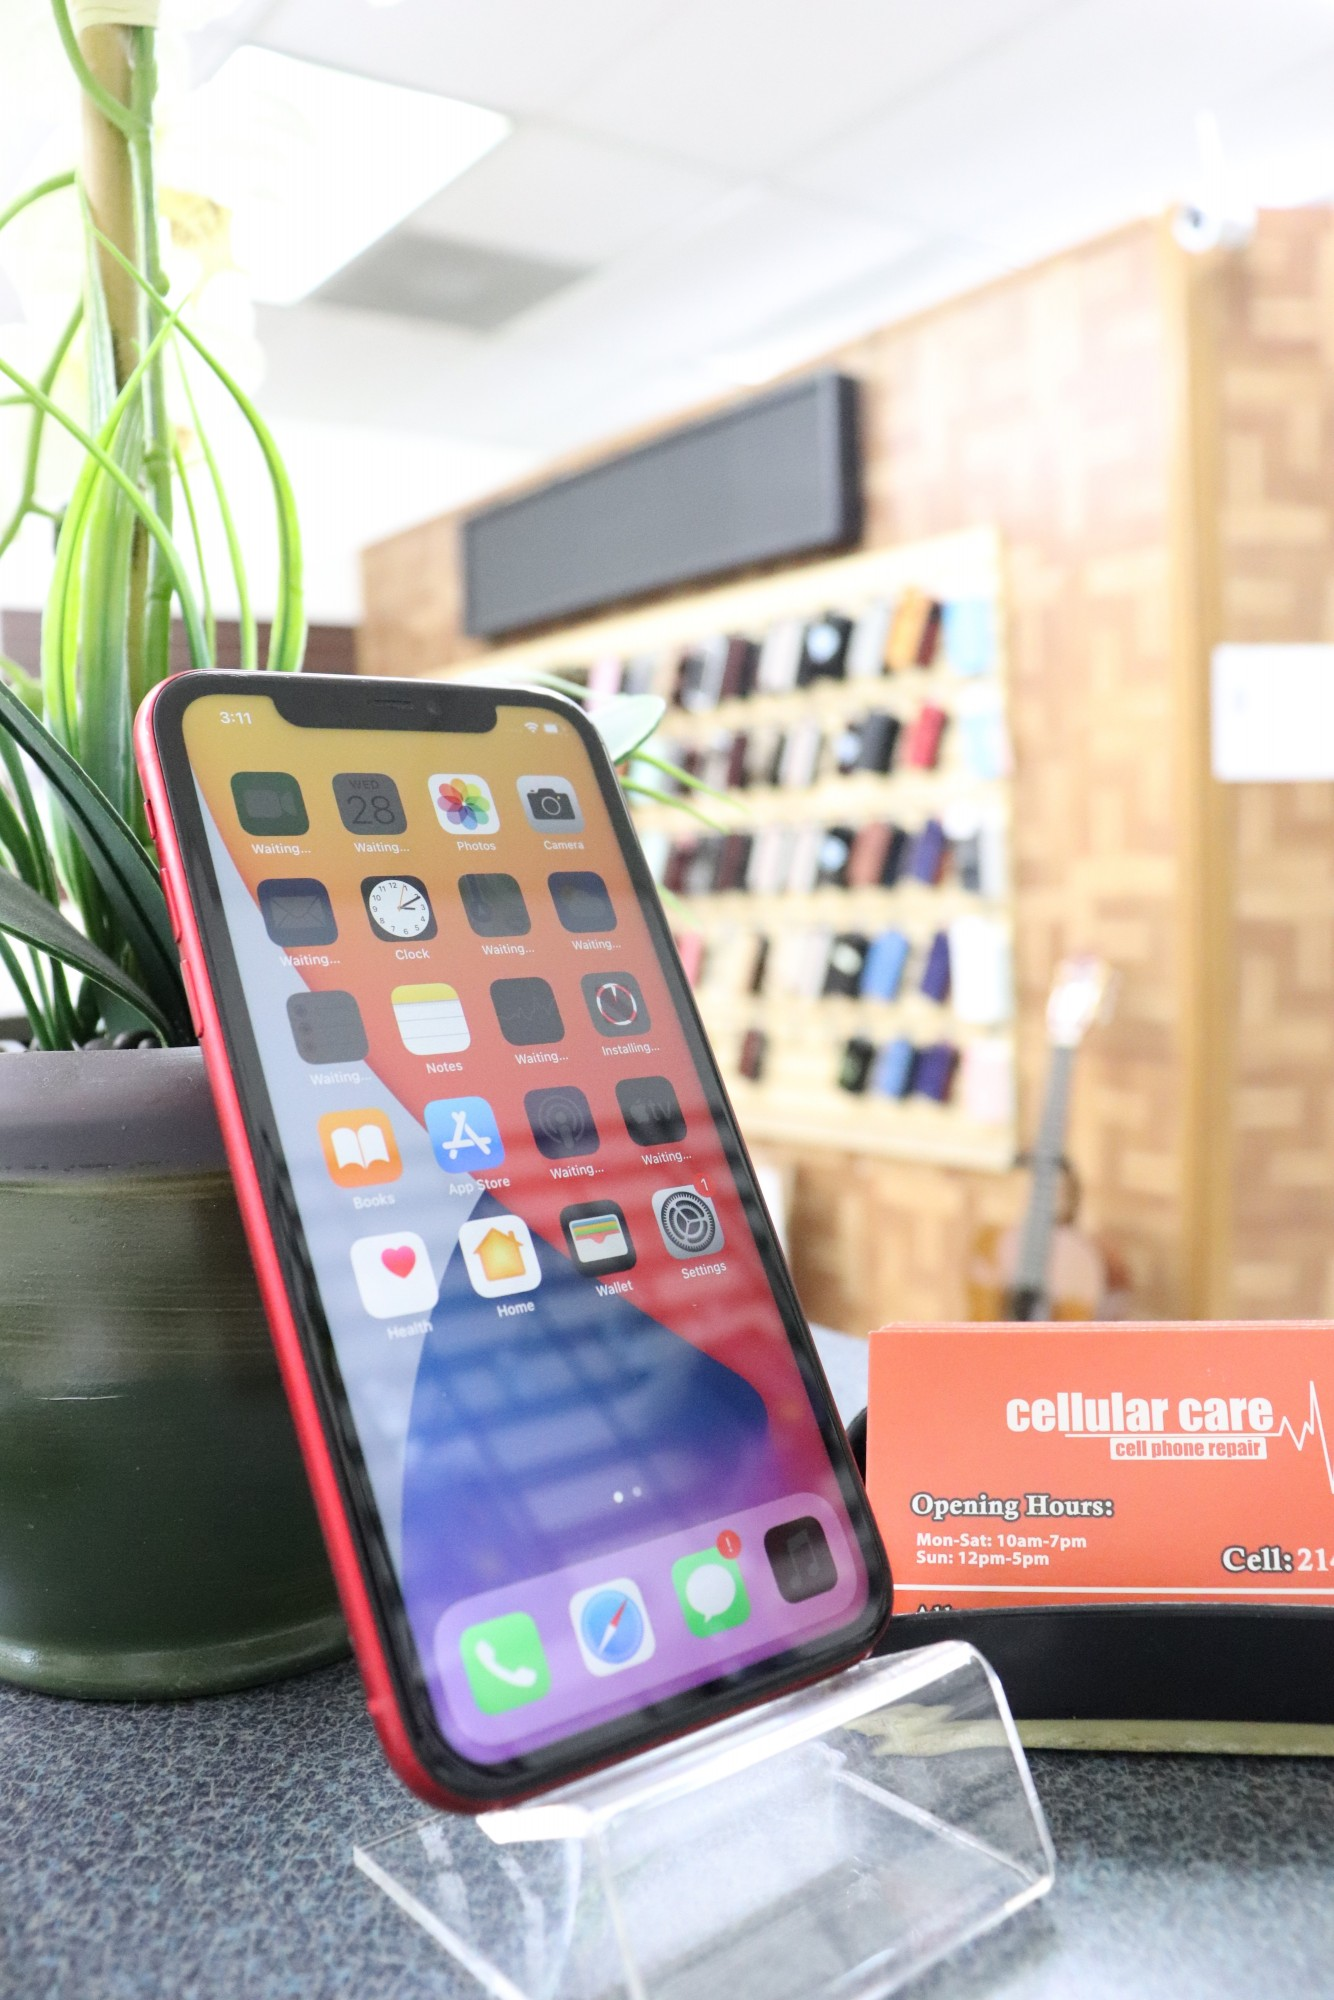 1638 – iPhone 11 64GB Red Unlocked $470 – Store Pick Up Address: Cellular Care 300 N Coit Rd #157 Richardson TX, 75080 Mon-Sat: 11Am to 7Pm Sun: 12 to 5Pm *About this item: -Condition: 9/10 -30 Days Warranty By Cellular Care.